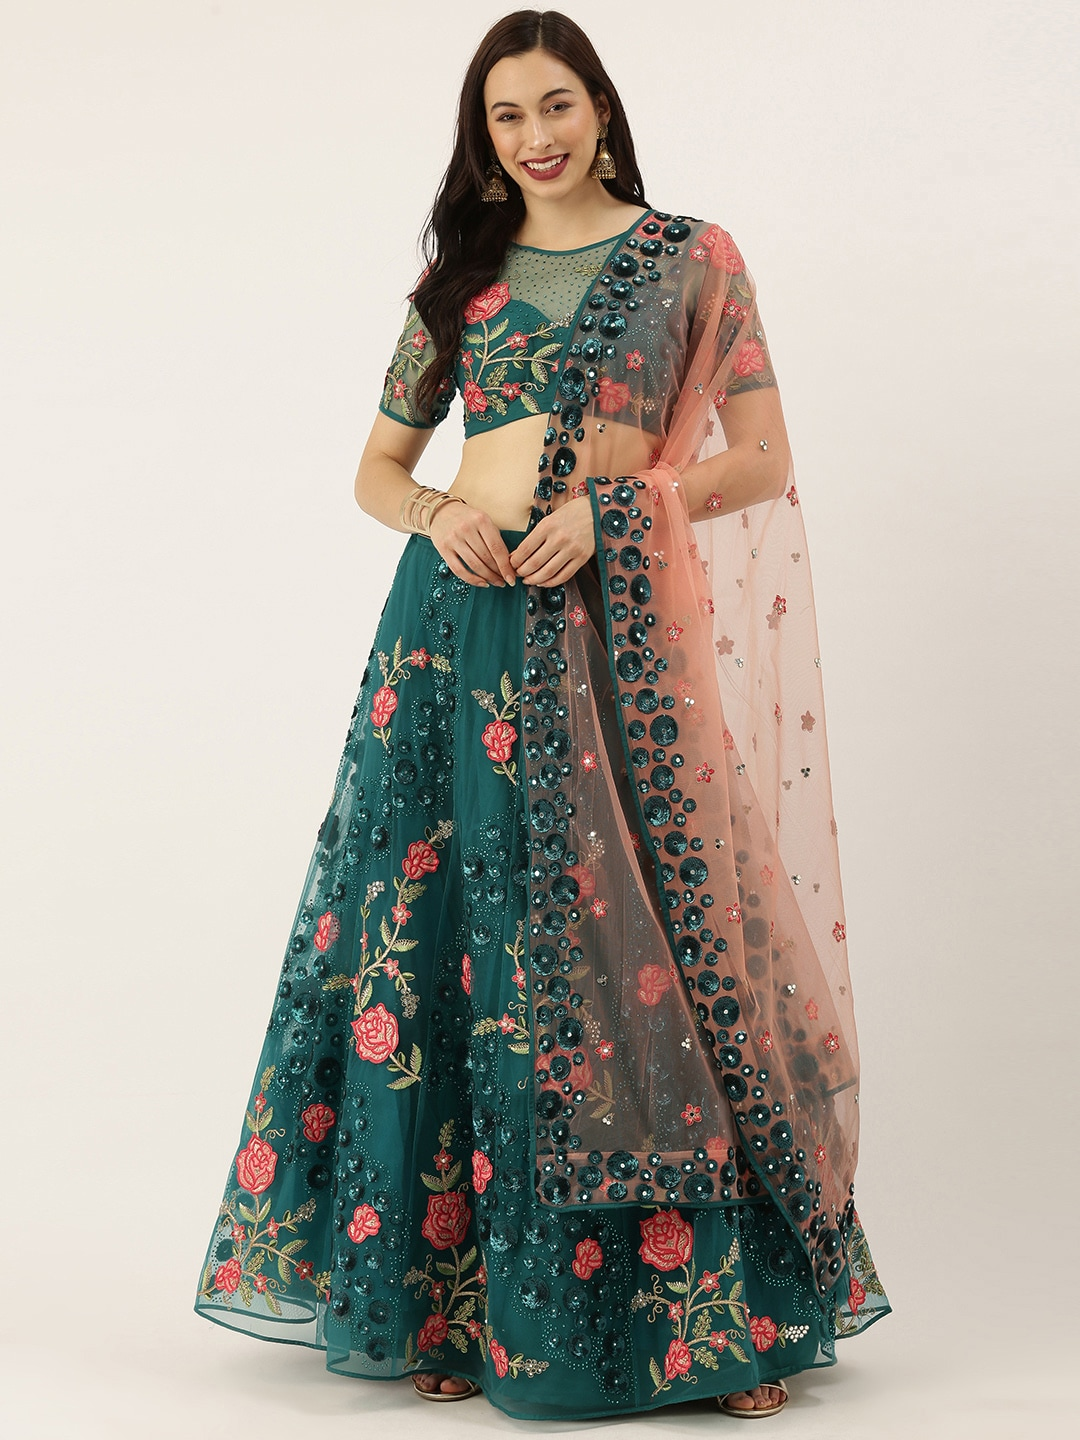 panchhi Green & Pink Embroidered Semi-Stitched Lehenga & Unstitched Blouse with Dupatta